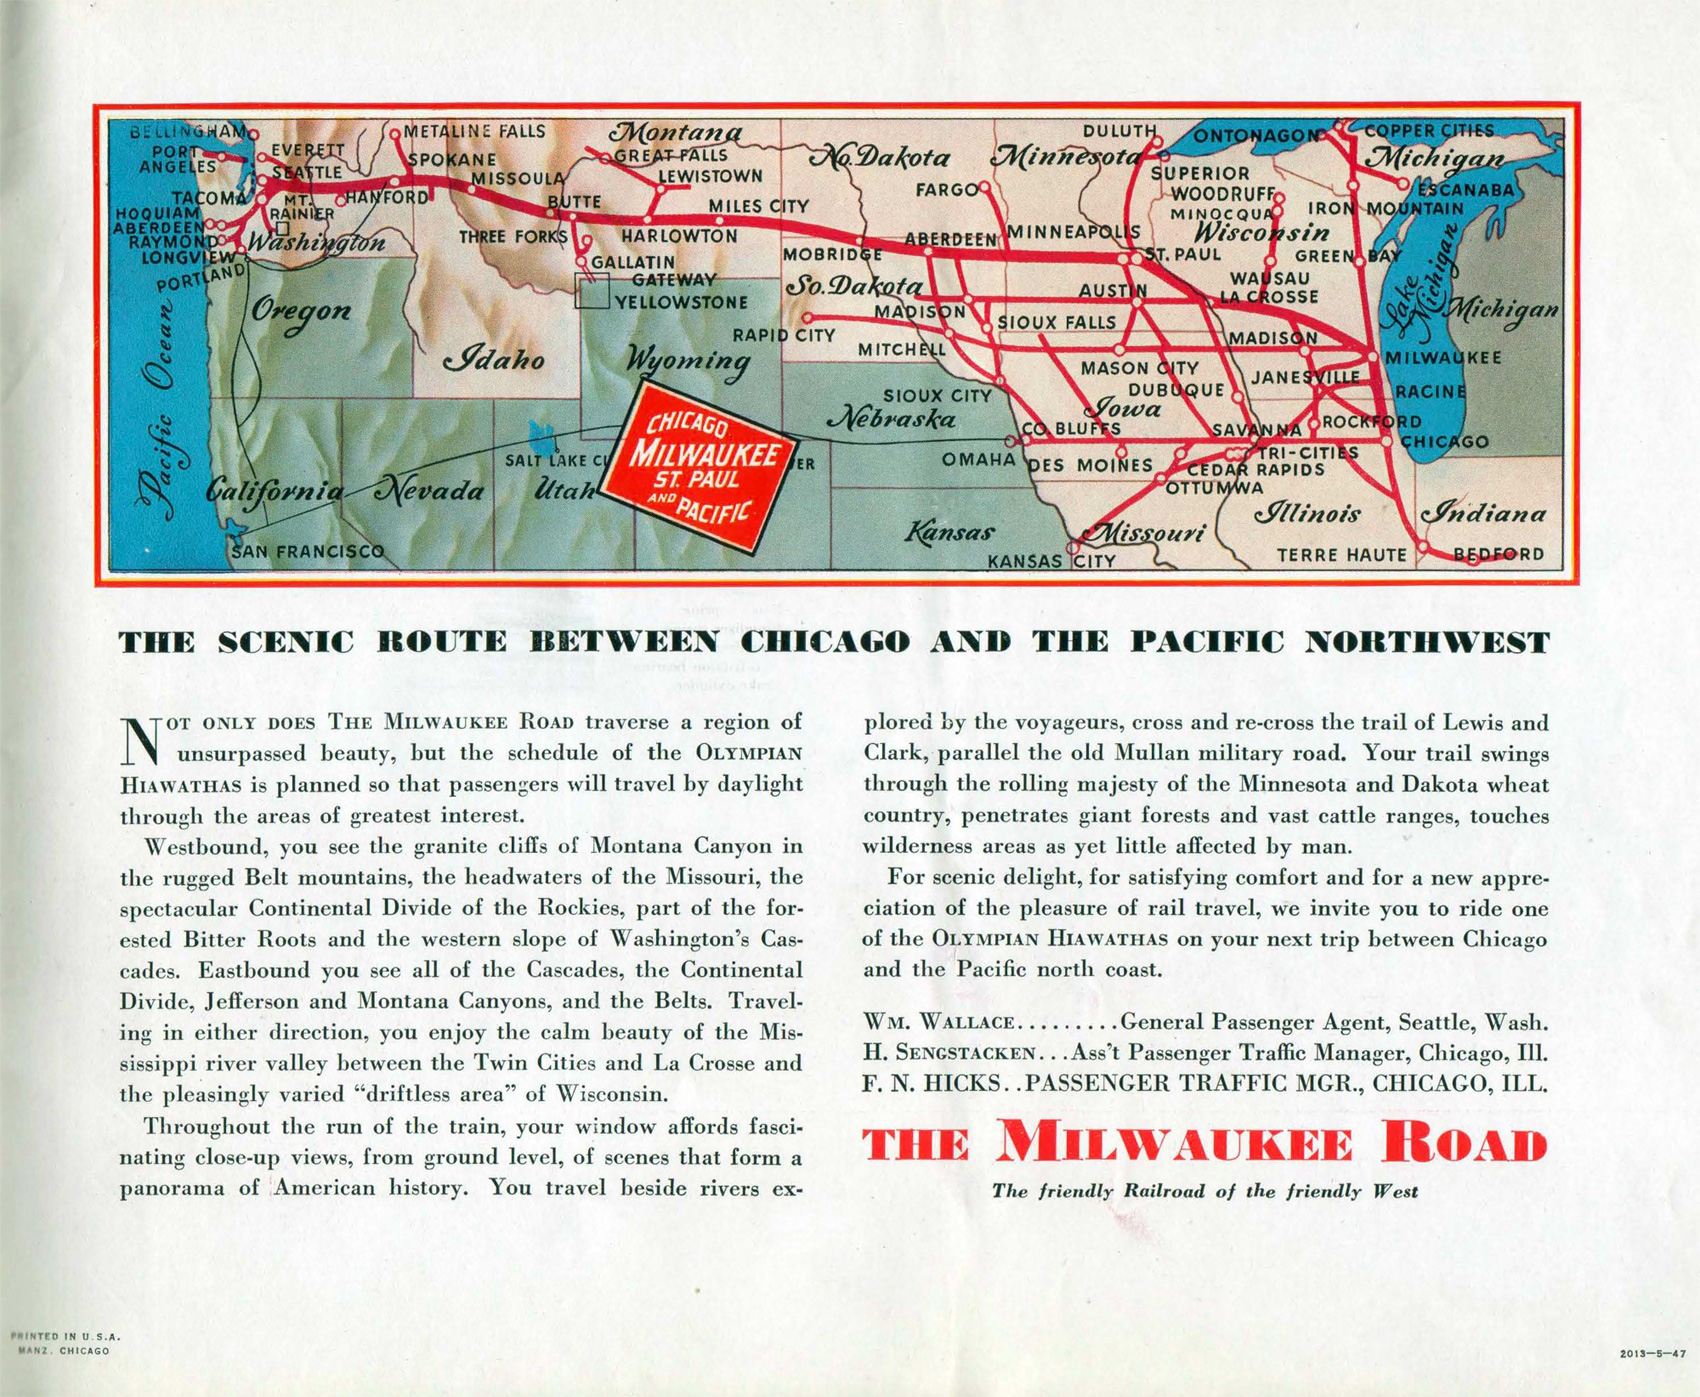 Olympian Hiawatha on railway route map, northern pacific railroad route map, pennsylvania railroad route map, snoqualmie pass tunnel map, santa fe railroad route map, texas railroad route map, georgia railroad route map, florida route map, milwaukee road system map, oak leaf trail milwaukee county map, milwaukee street map, milwaukee minnesota map, route 66 trip planner map, frisco railroad route map, bnsf rail route map, milwaukee county parks map, mt. shasta route map, transcontinental railroad route map, canadian railroad route map, long island railroad route map,